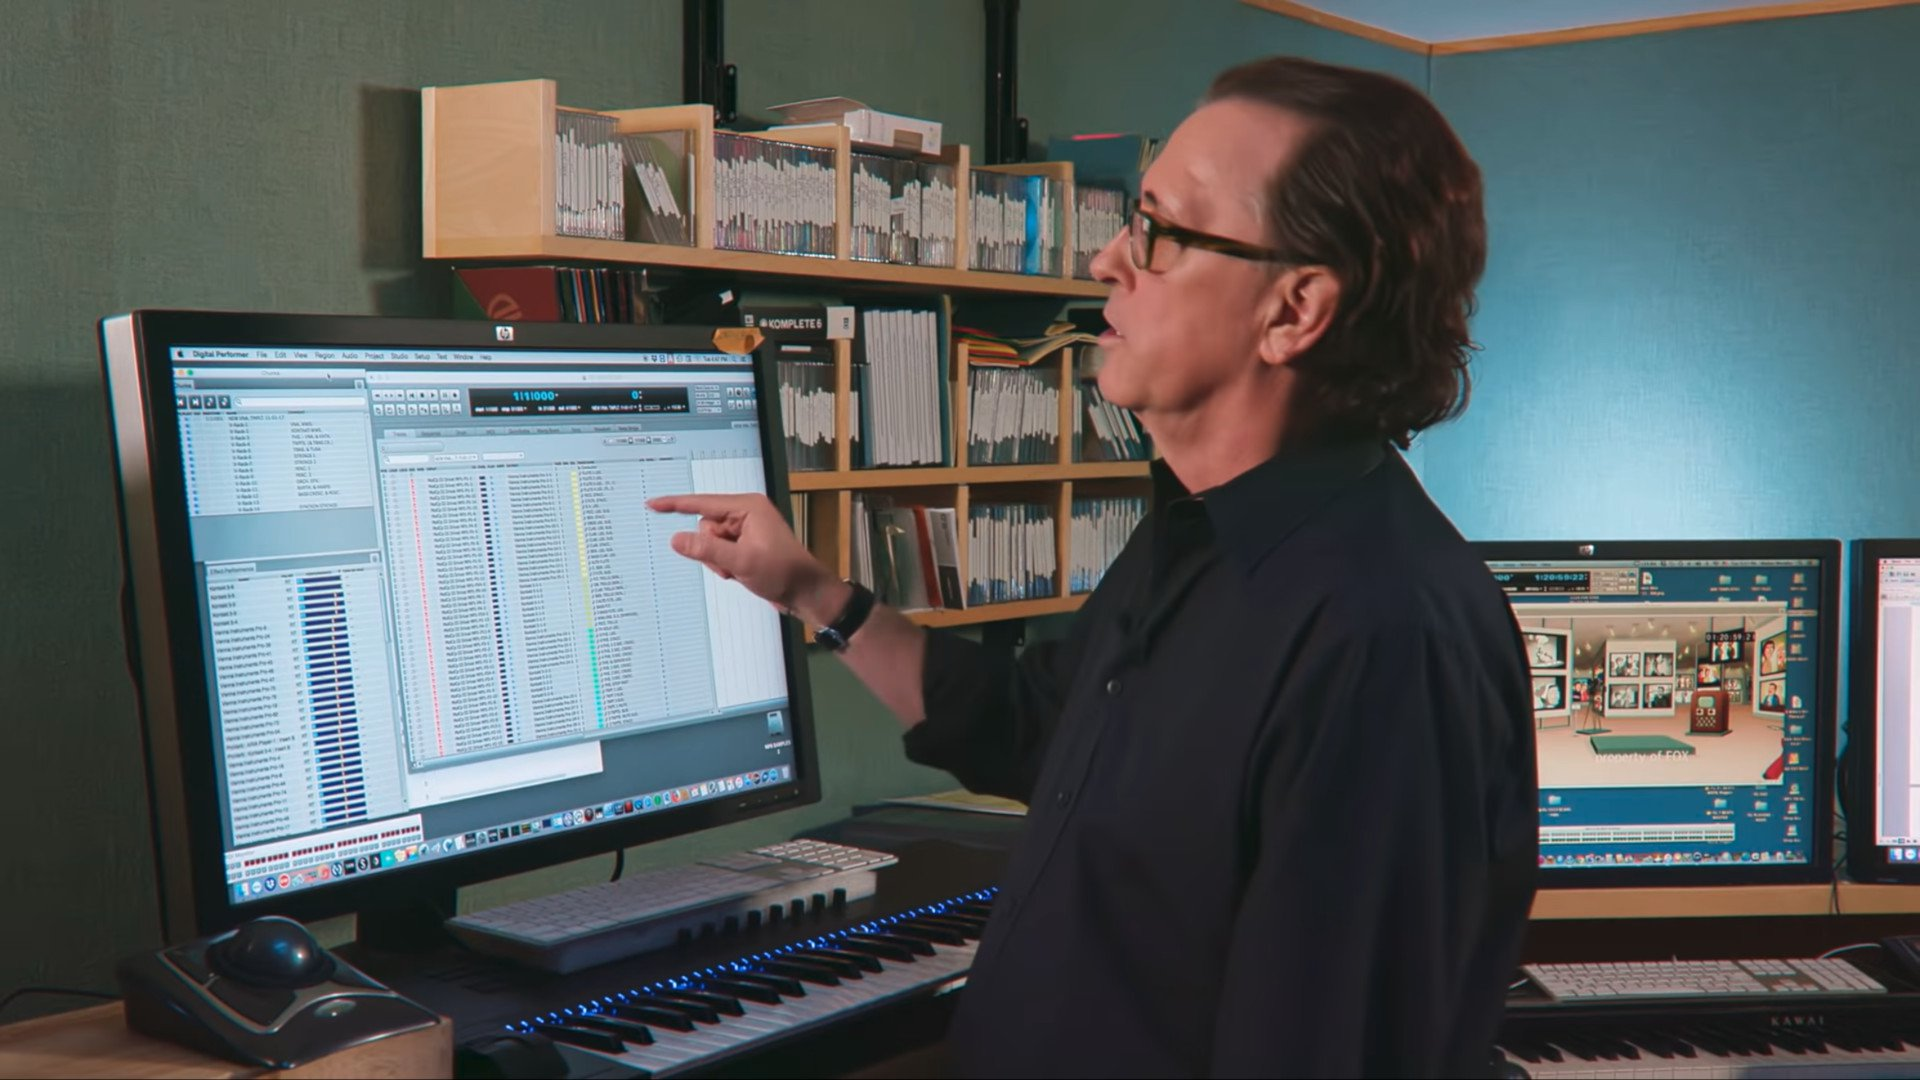 Family Guy composer Walter Murphy shares his process | News